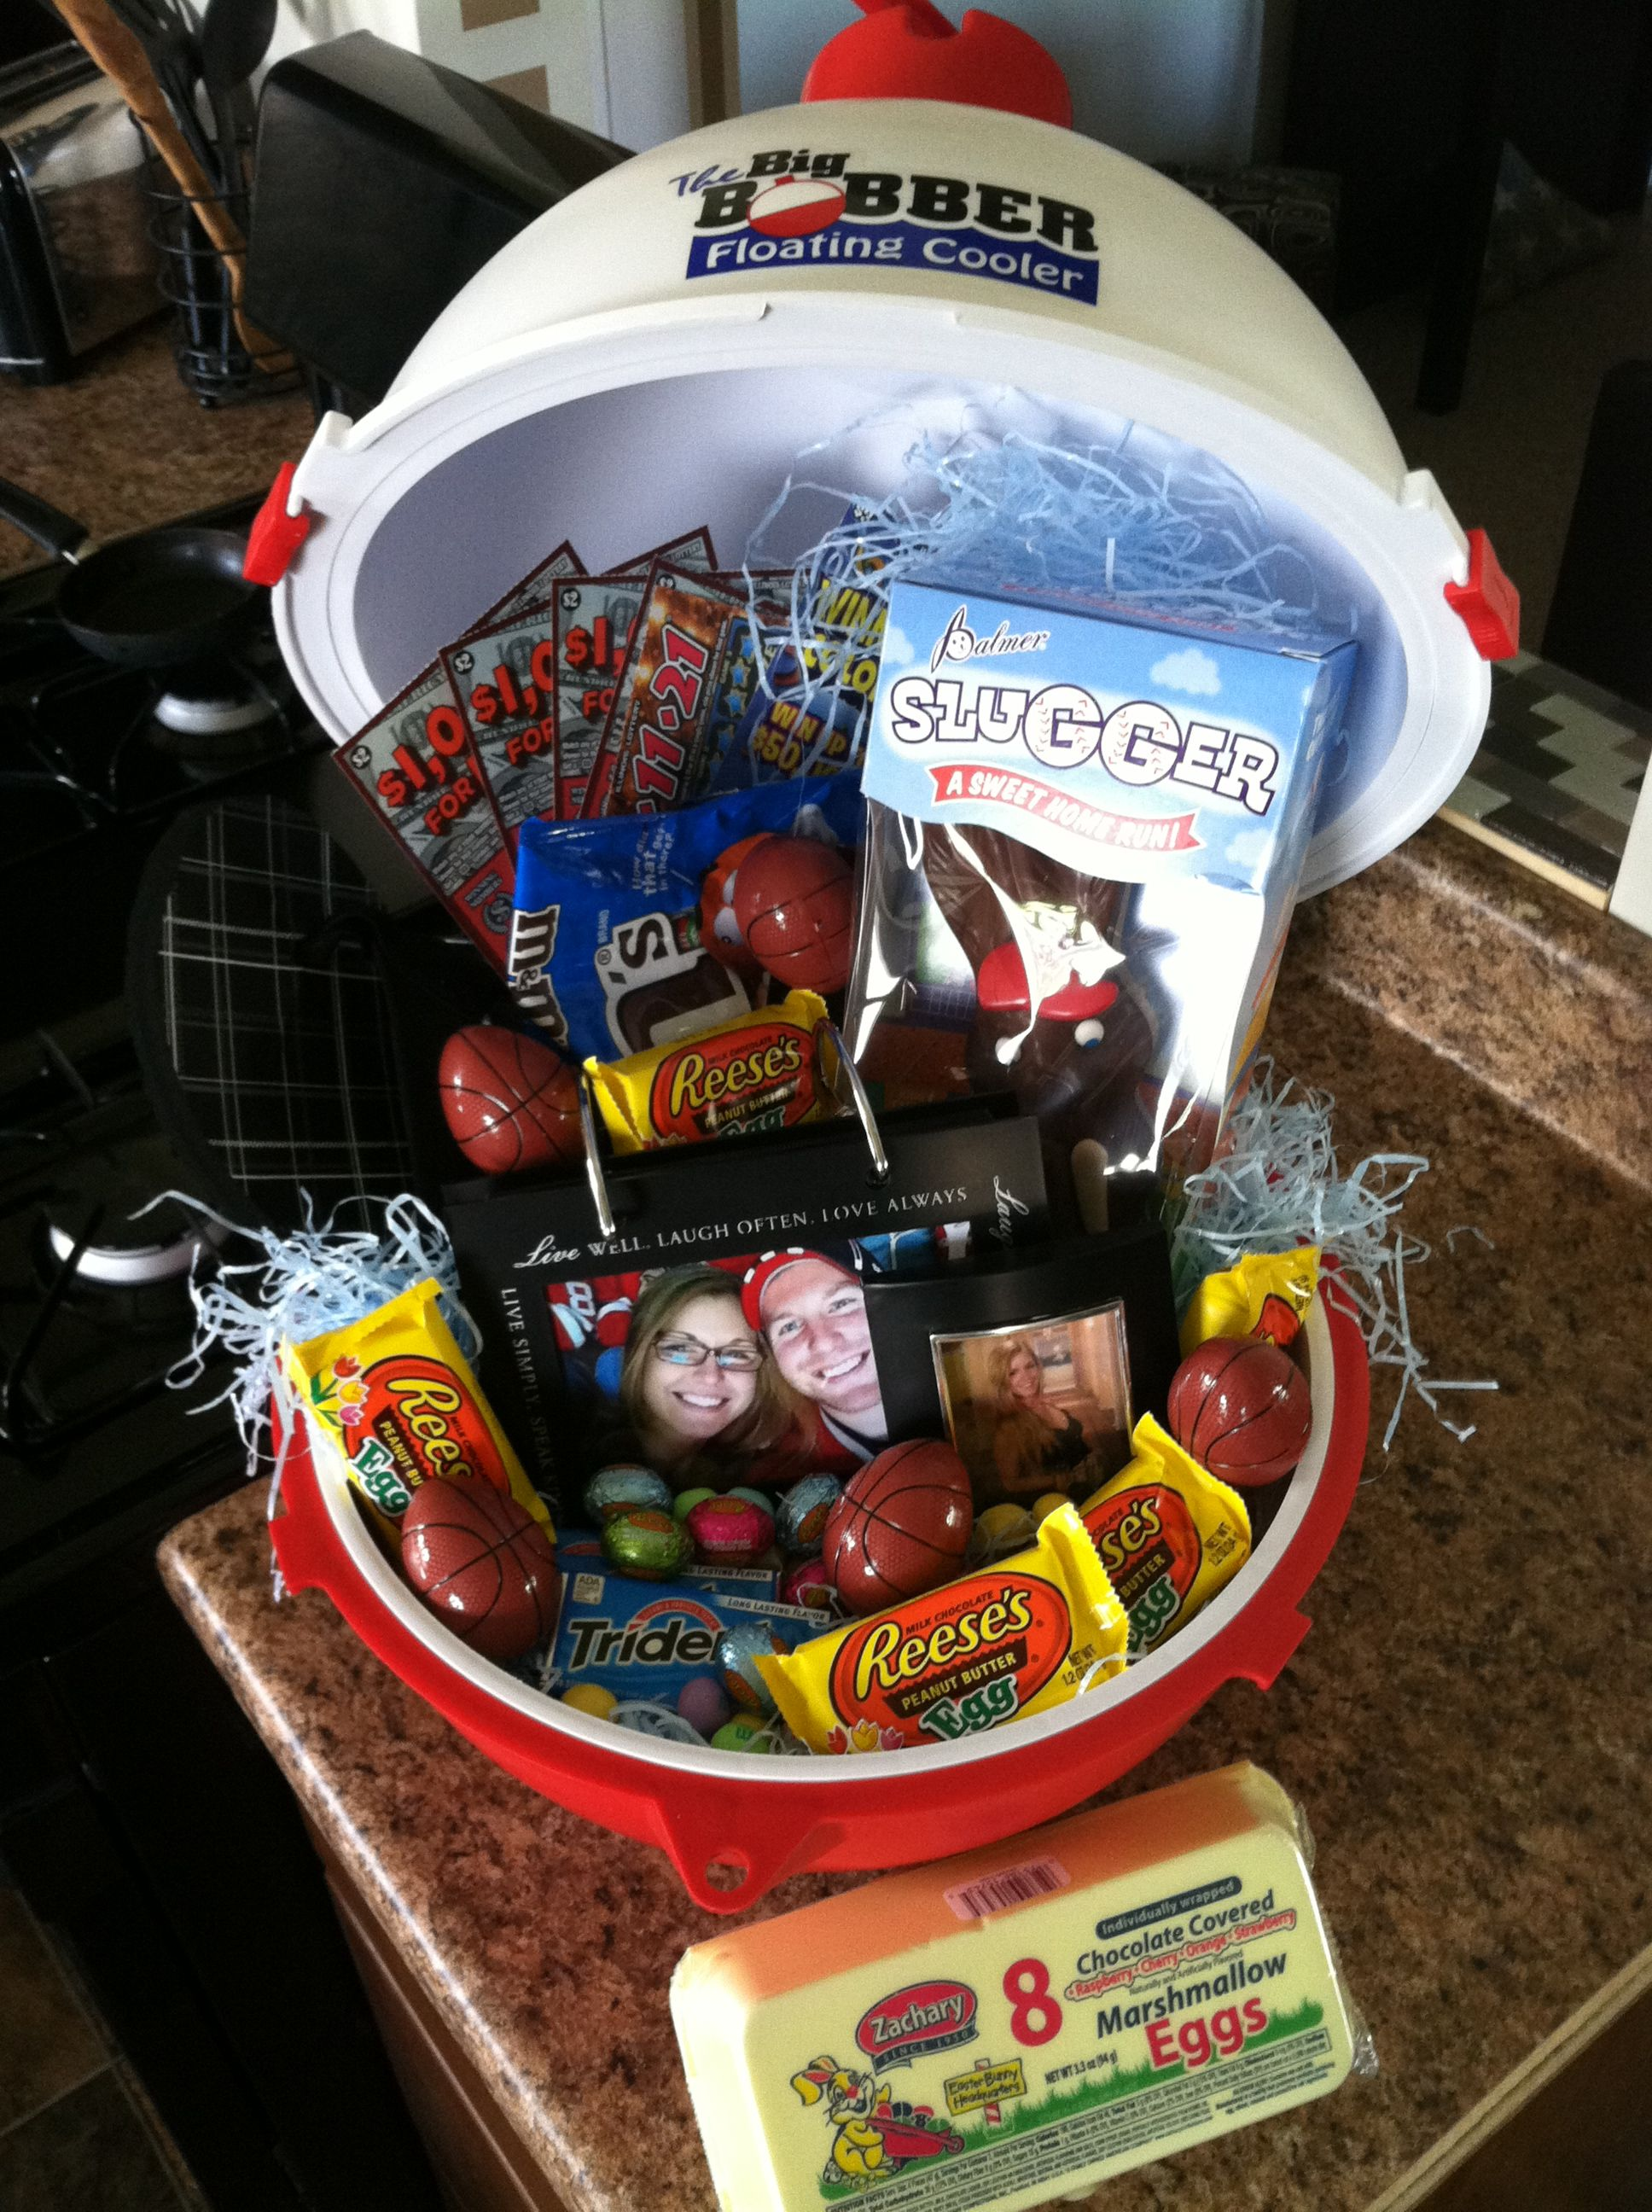 Man easter basket ideafloating cooler not a bad idea since we gift man easter negle Images